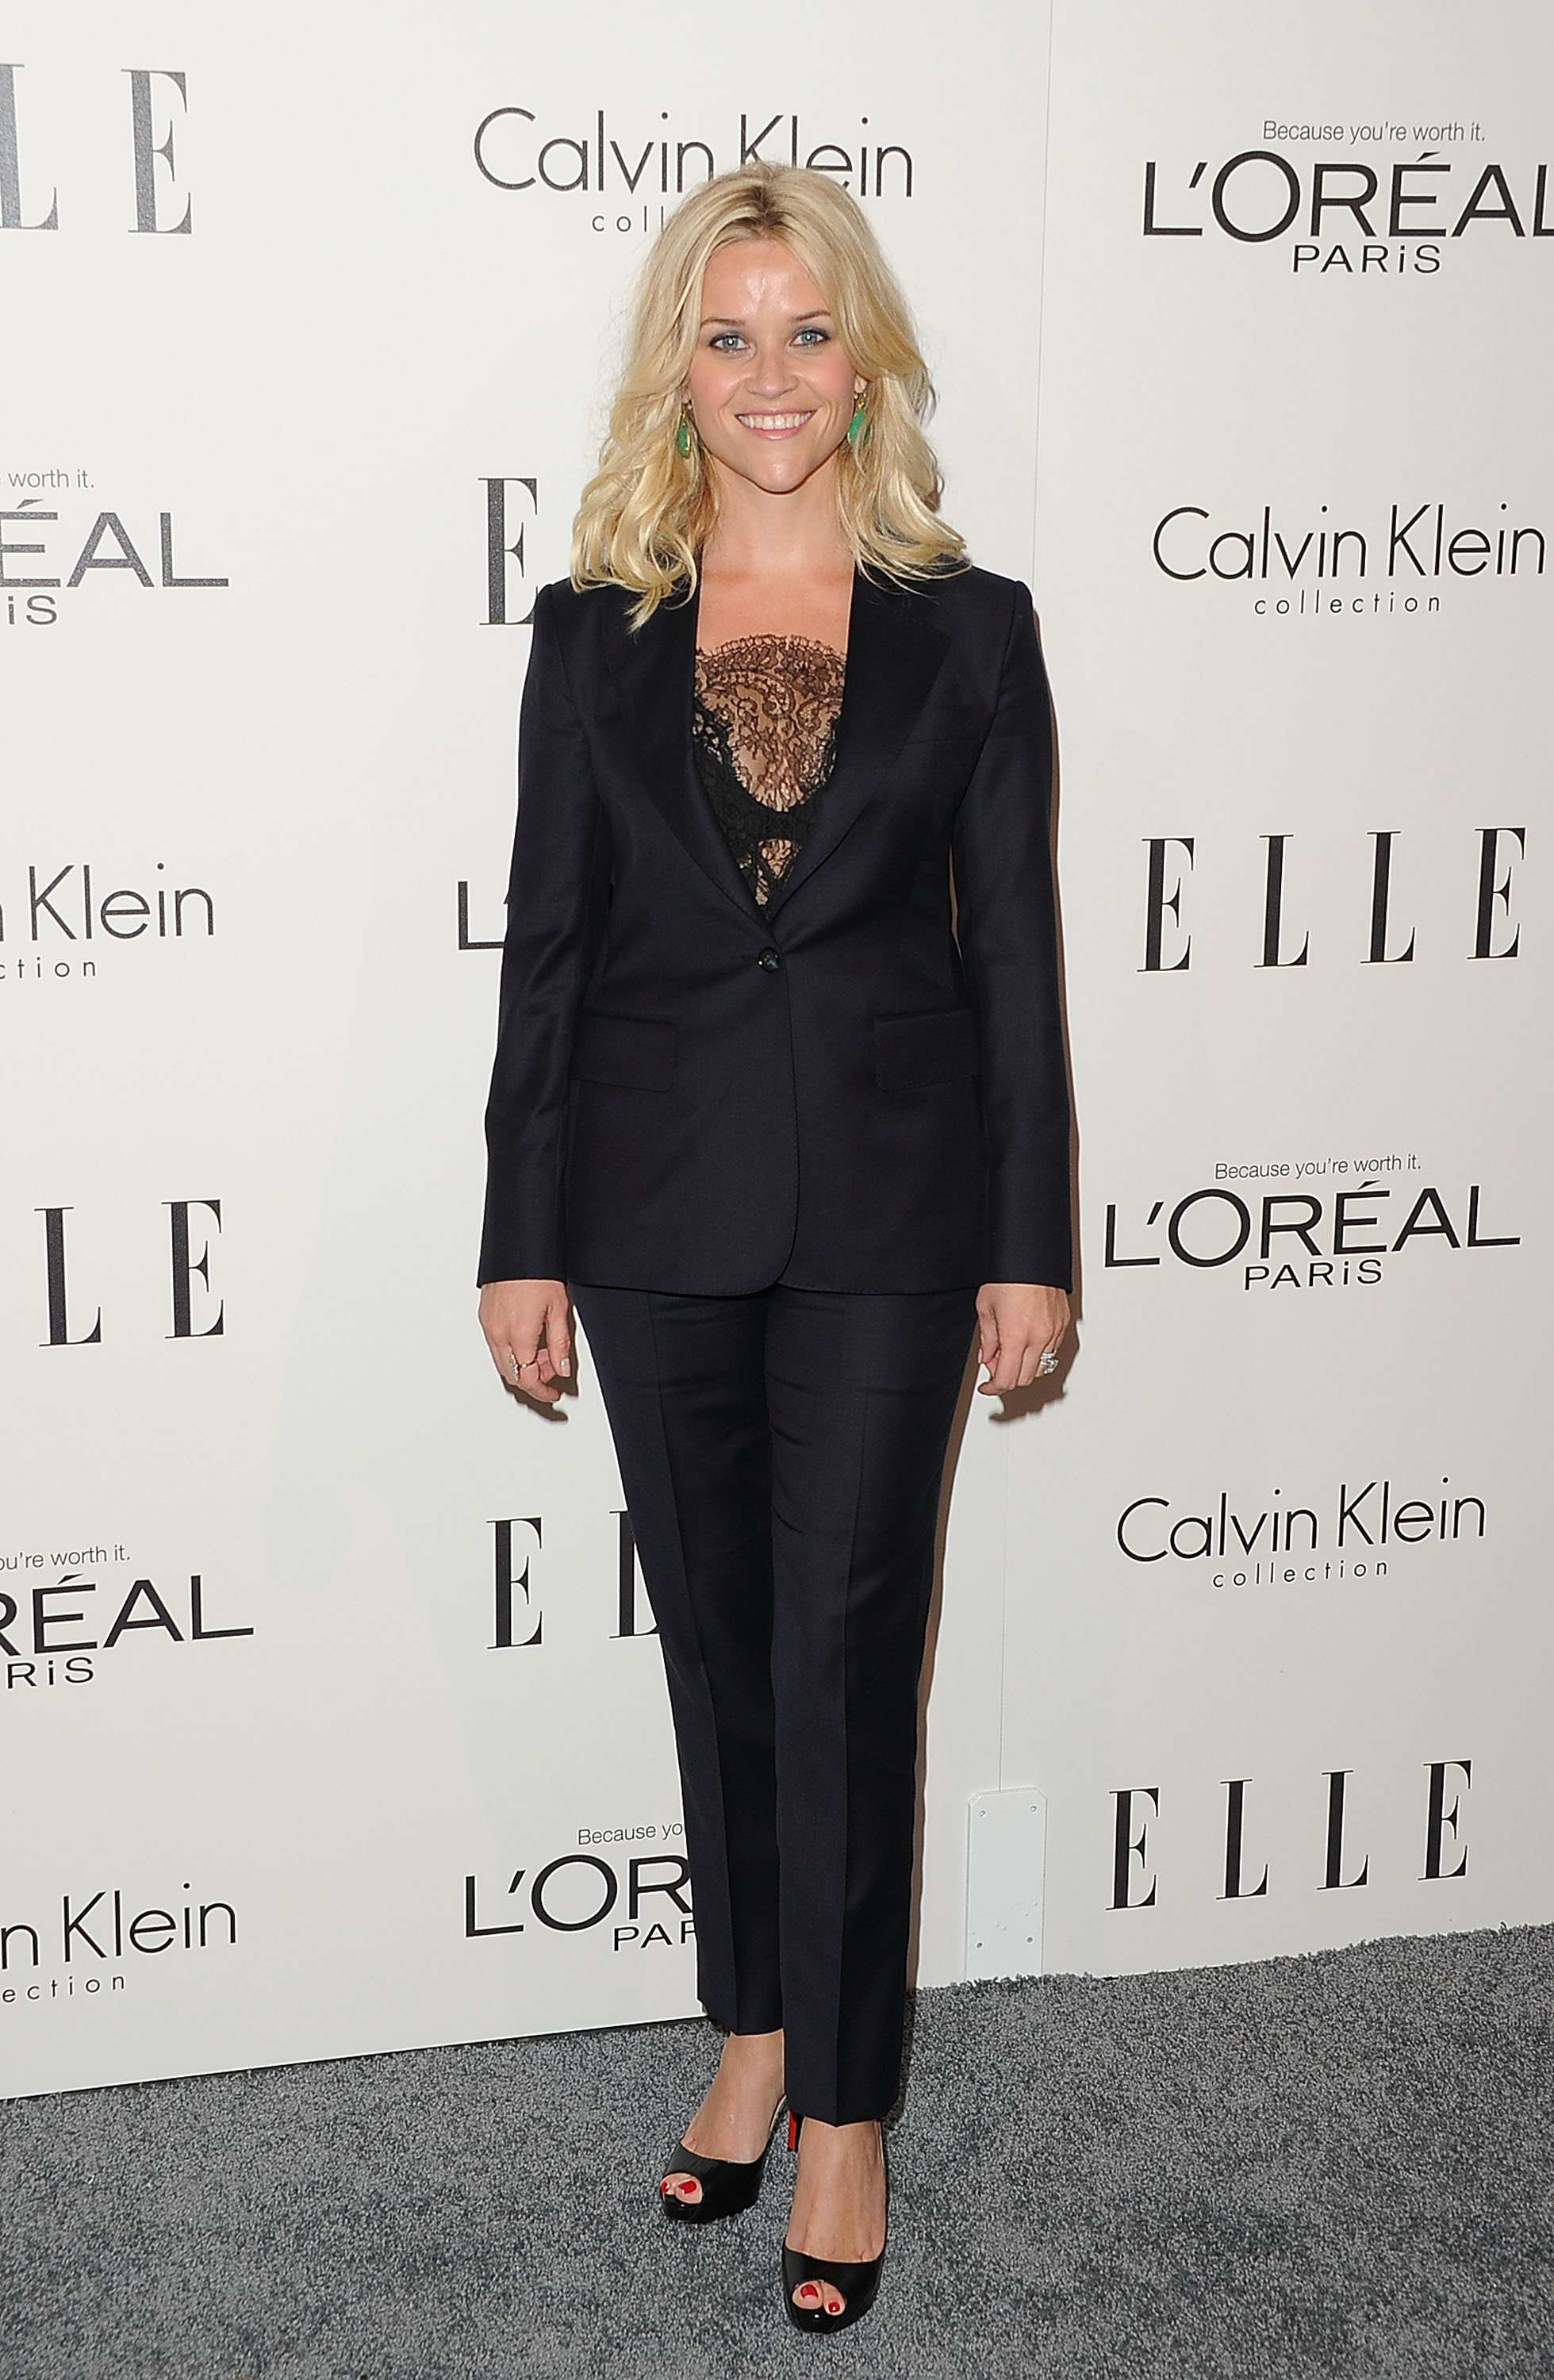 Reese Witherspoon wore a feminine suit to an event in LA honoring women in Hollywood.